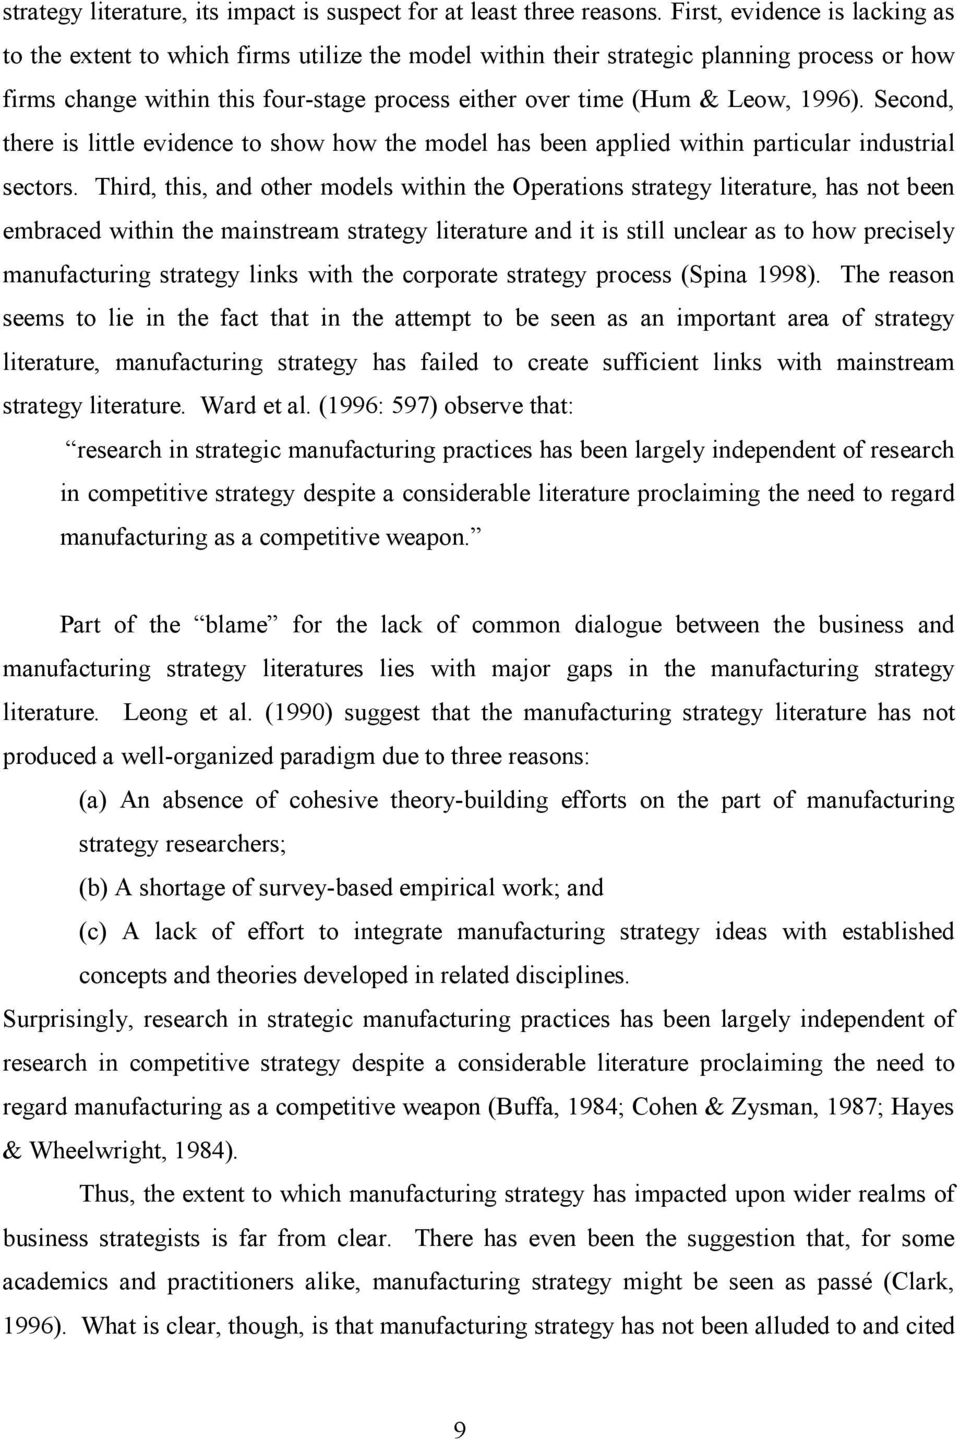 1996). Second, there is little evidence to show how the model has been applied within particular industrial sectors.